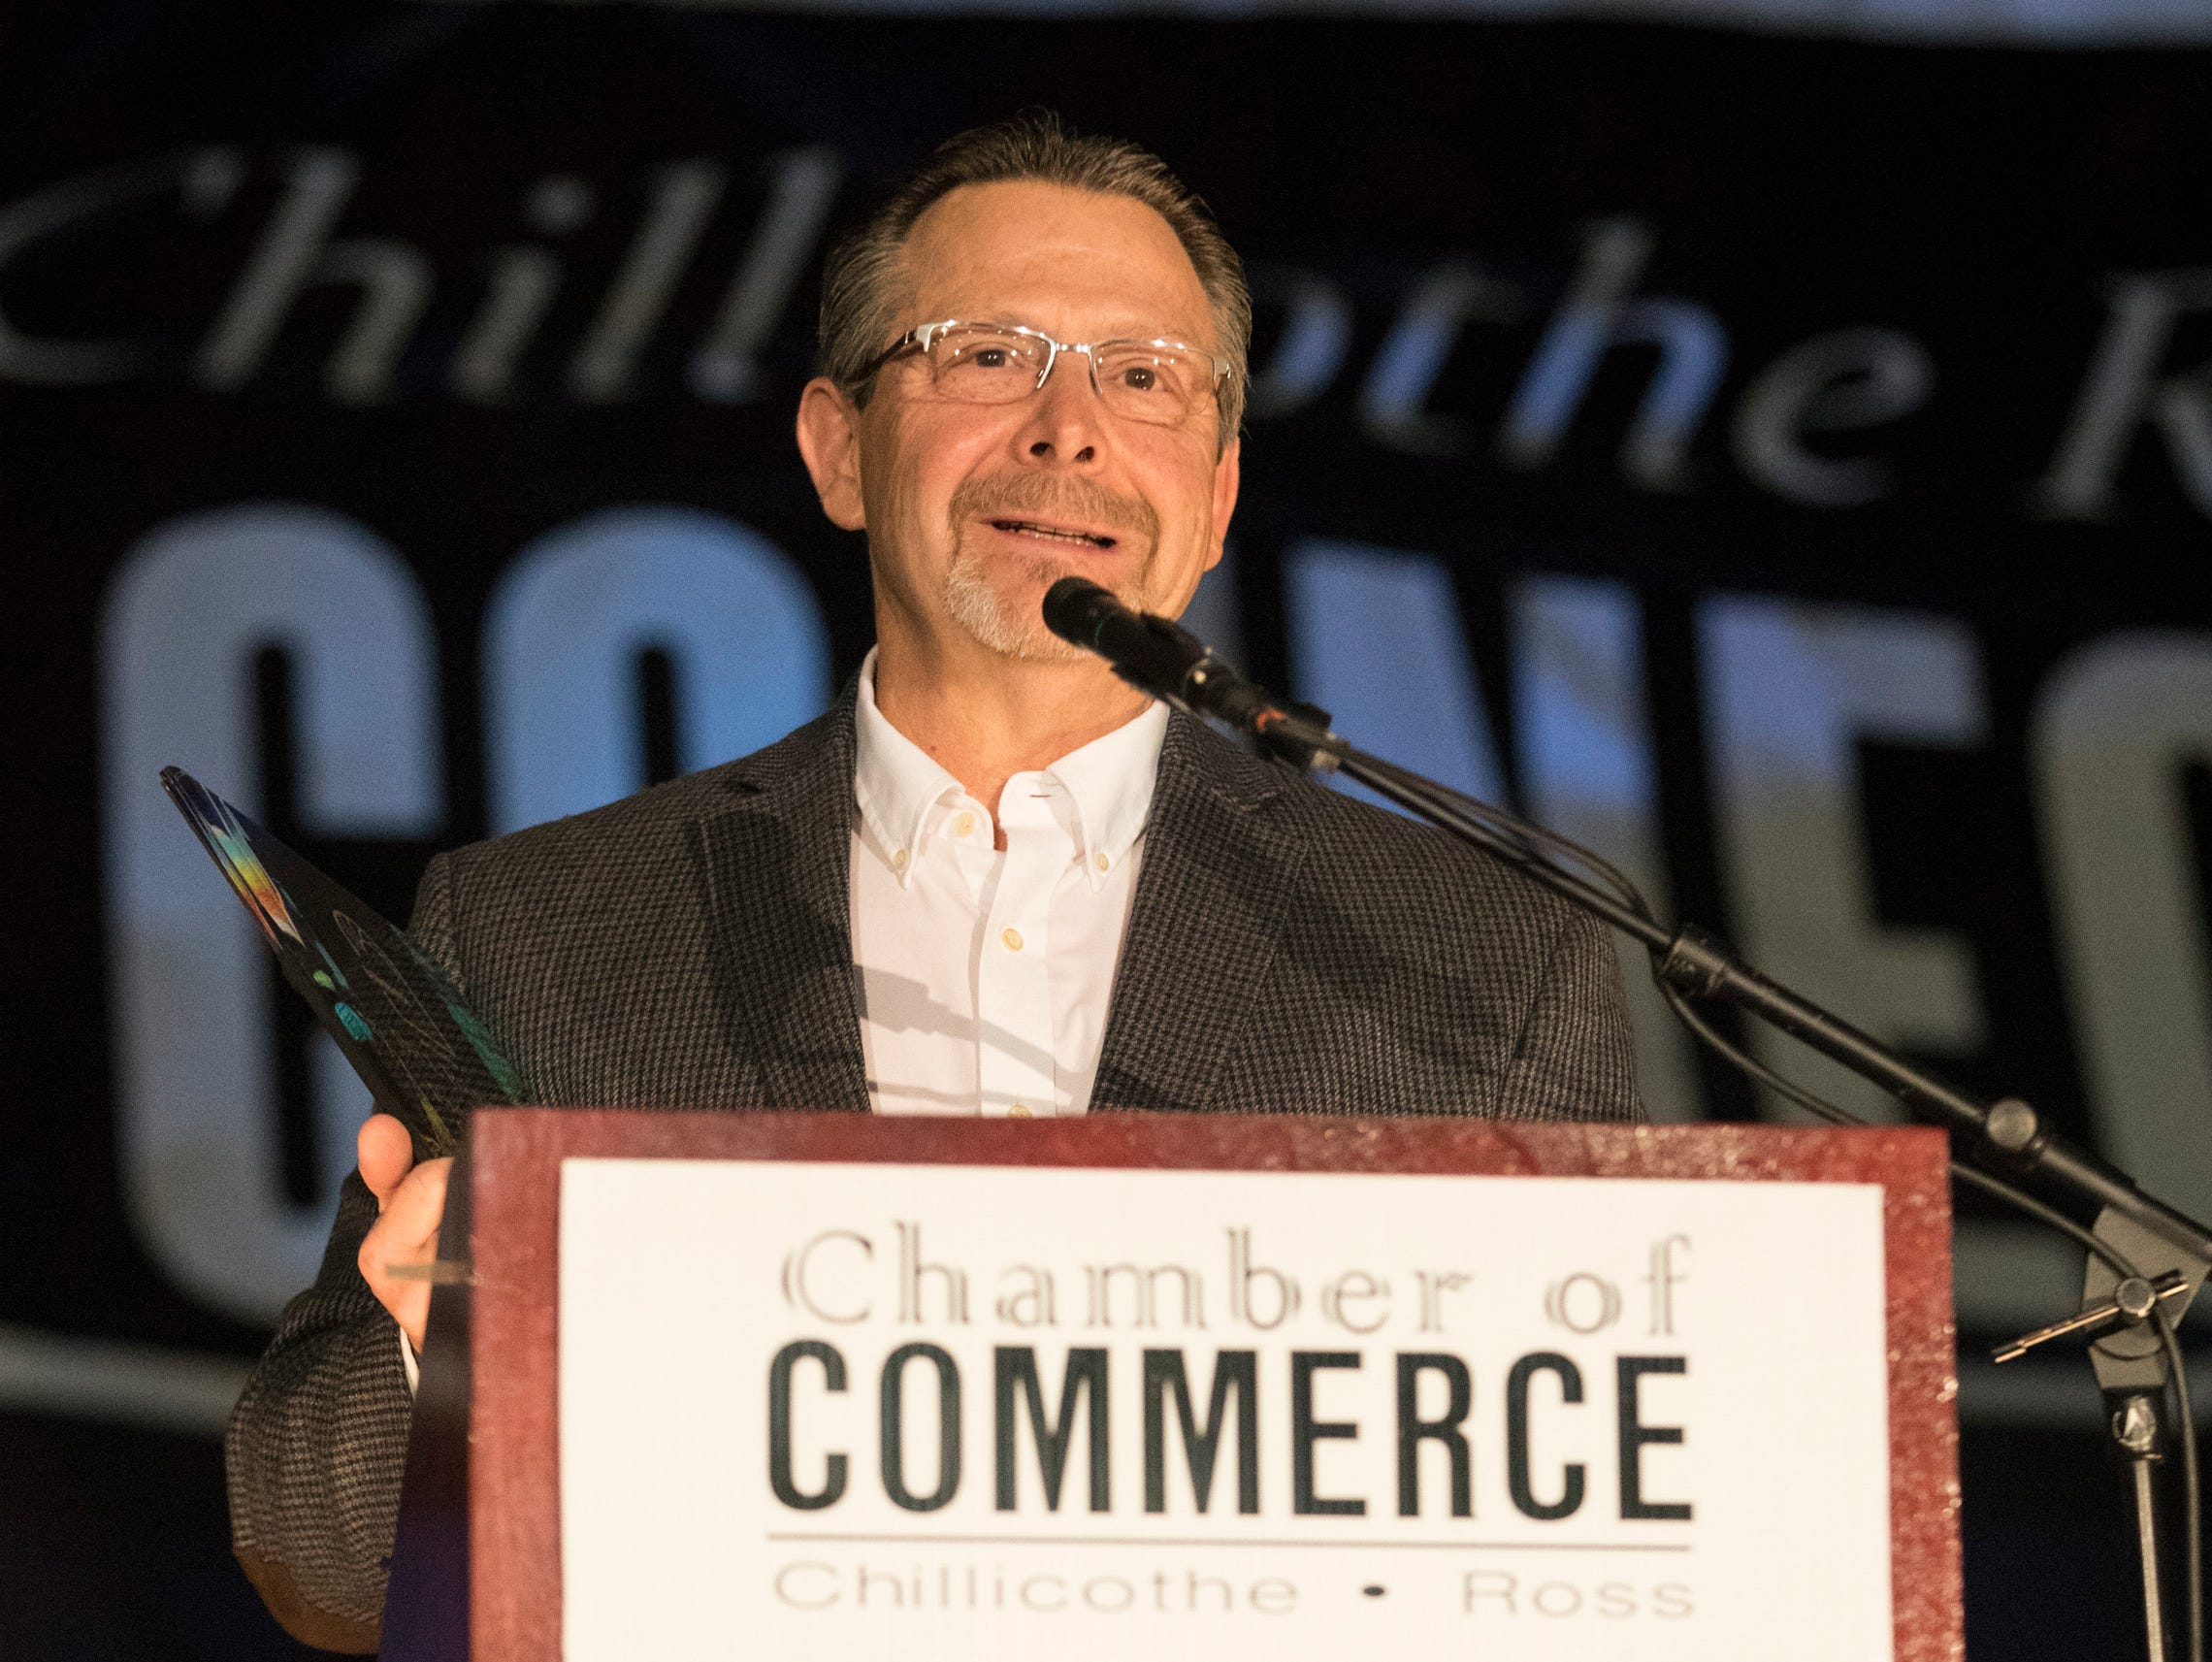 The Entrepreneur of the Year Award went to Bill Barker of Casa Del Taco at the 2019 Chillicothe and Ross County Chamber of Commerce annual meeting on March 12, 2019.